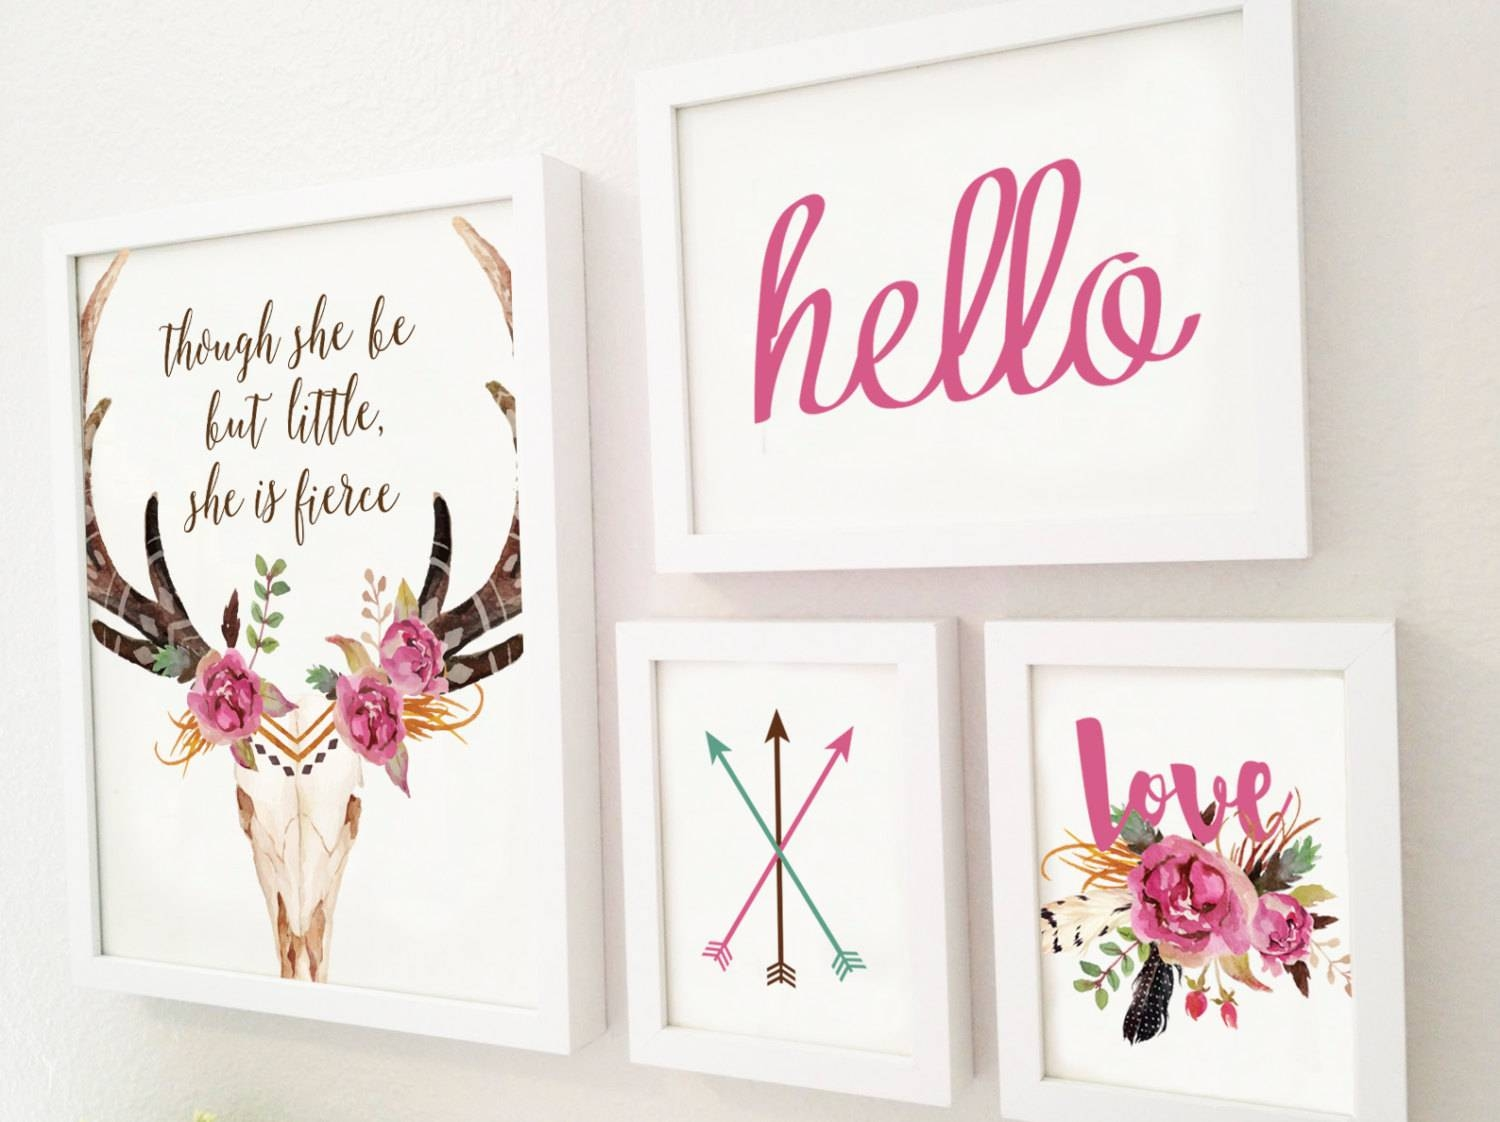 Four Piece Gallery Wall Set Children's Room Art Rustic Pertaining To Most Up To Date Wall Art Print Sets (View 18 of 20)